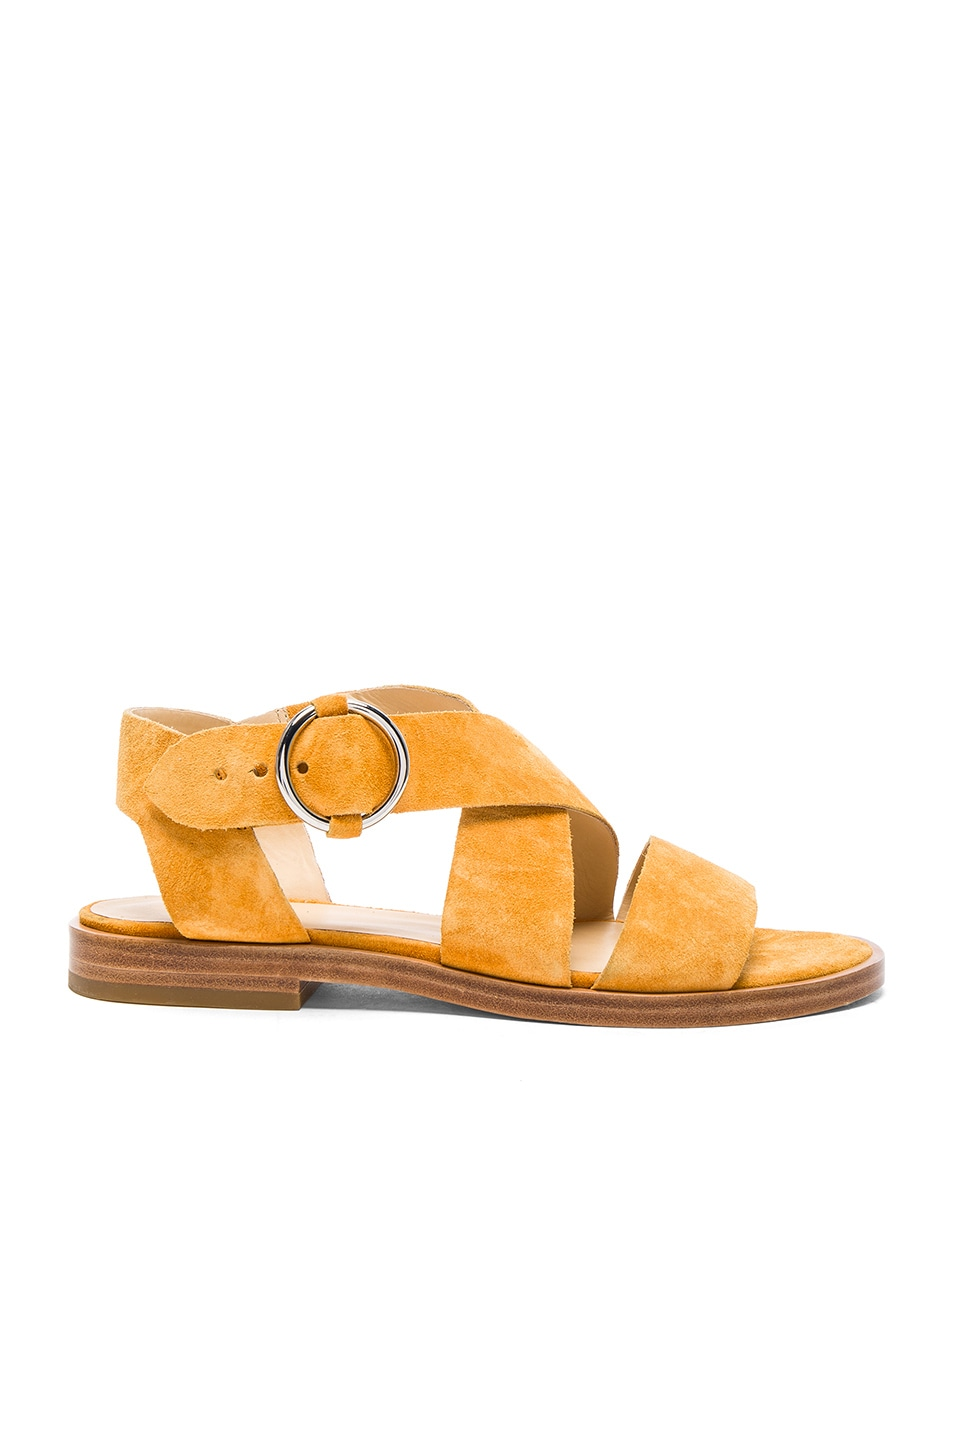 Image 1 of Rag & Bone Brie Sandal in Marigold